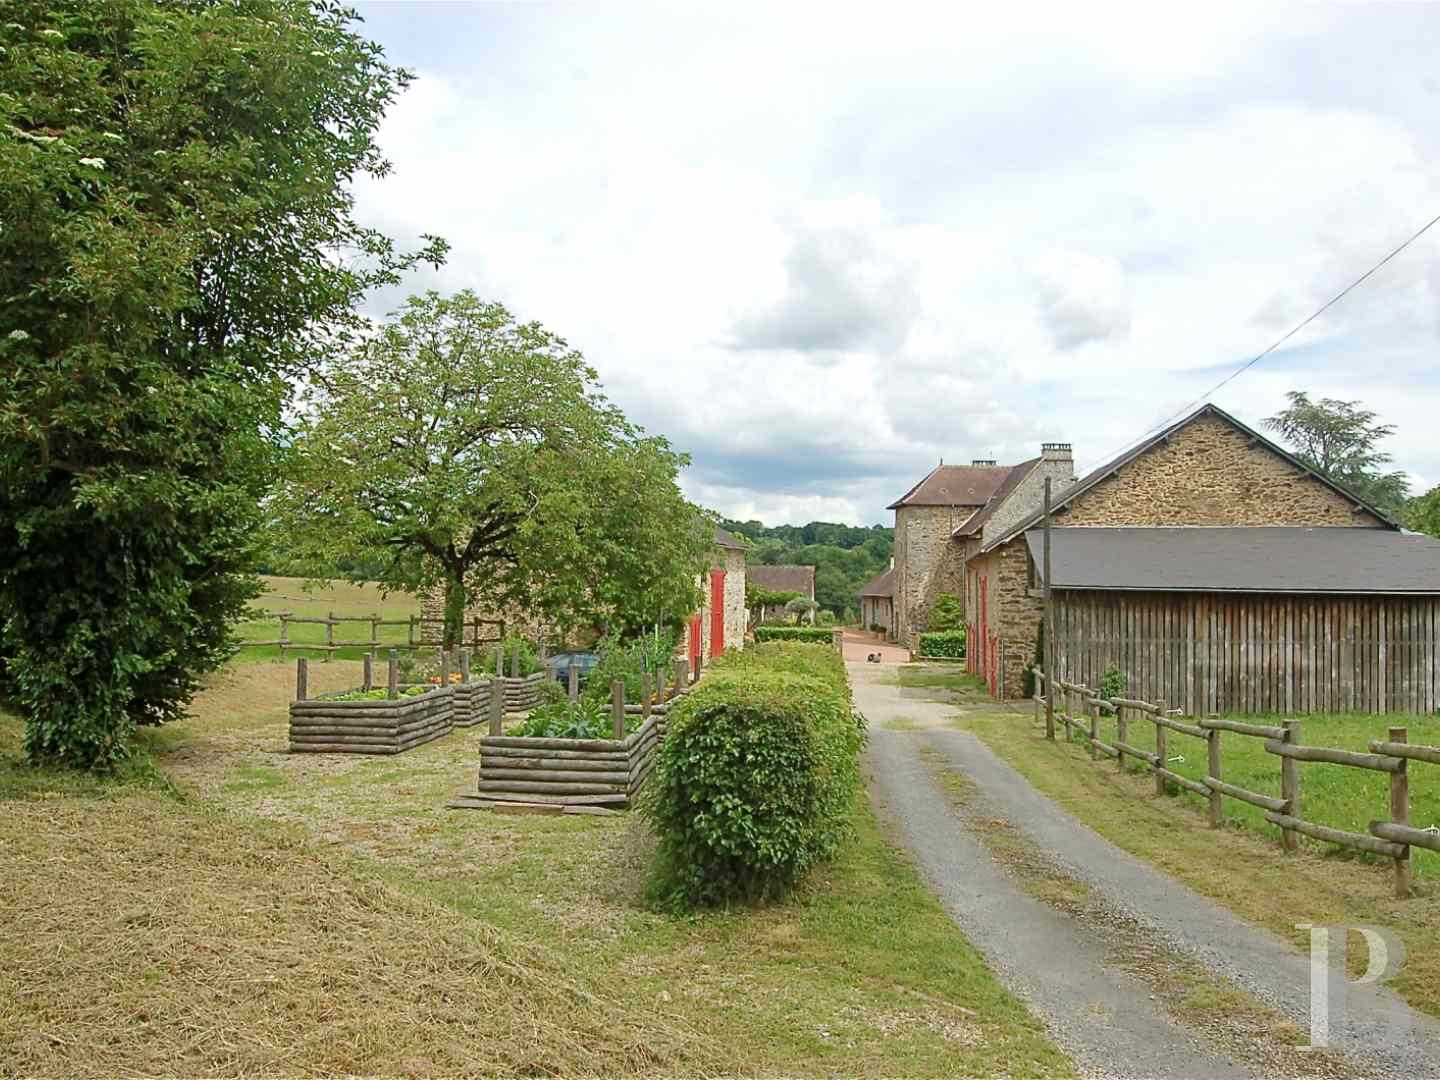 property for sale France limousin free lands - 3 zoom